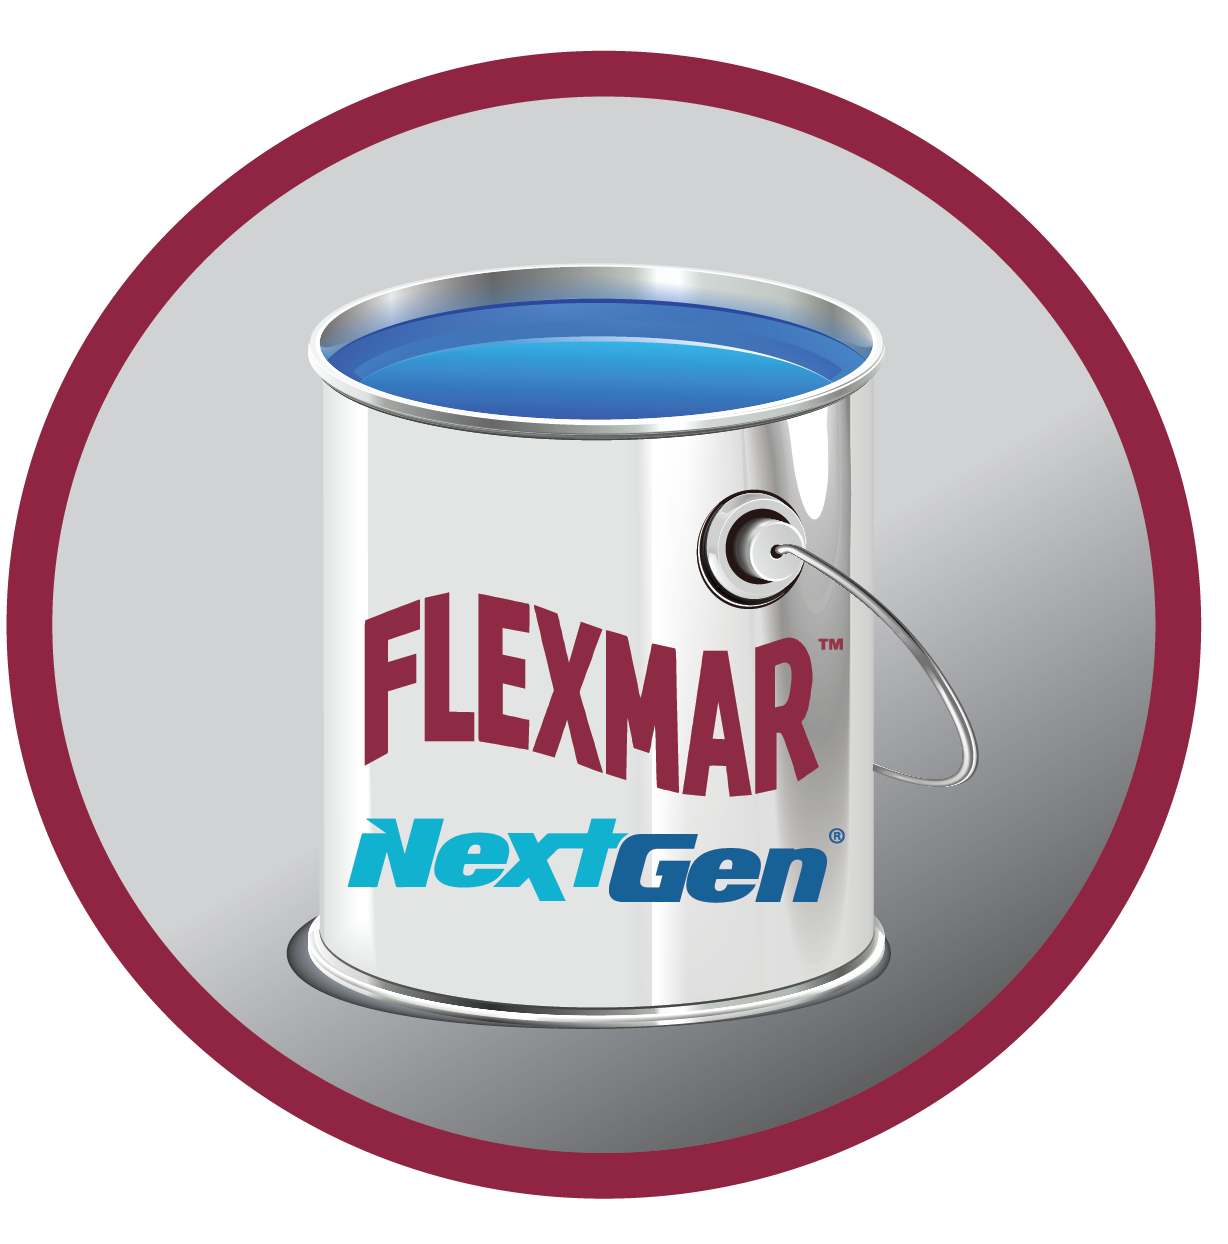 flexmar-branding-icon-07